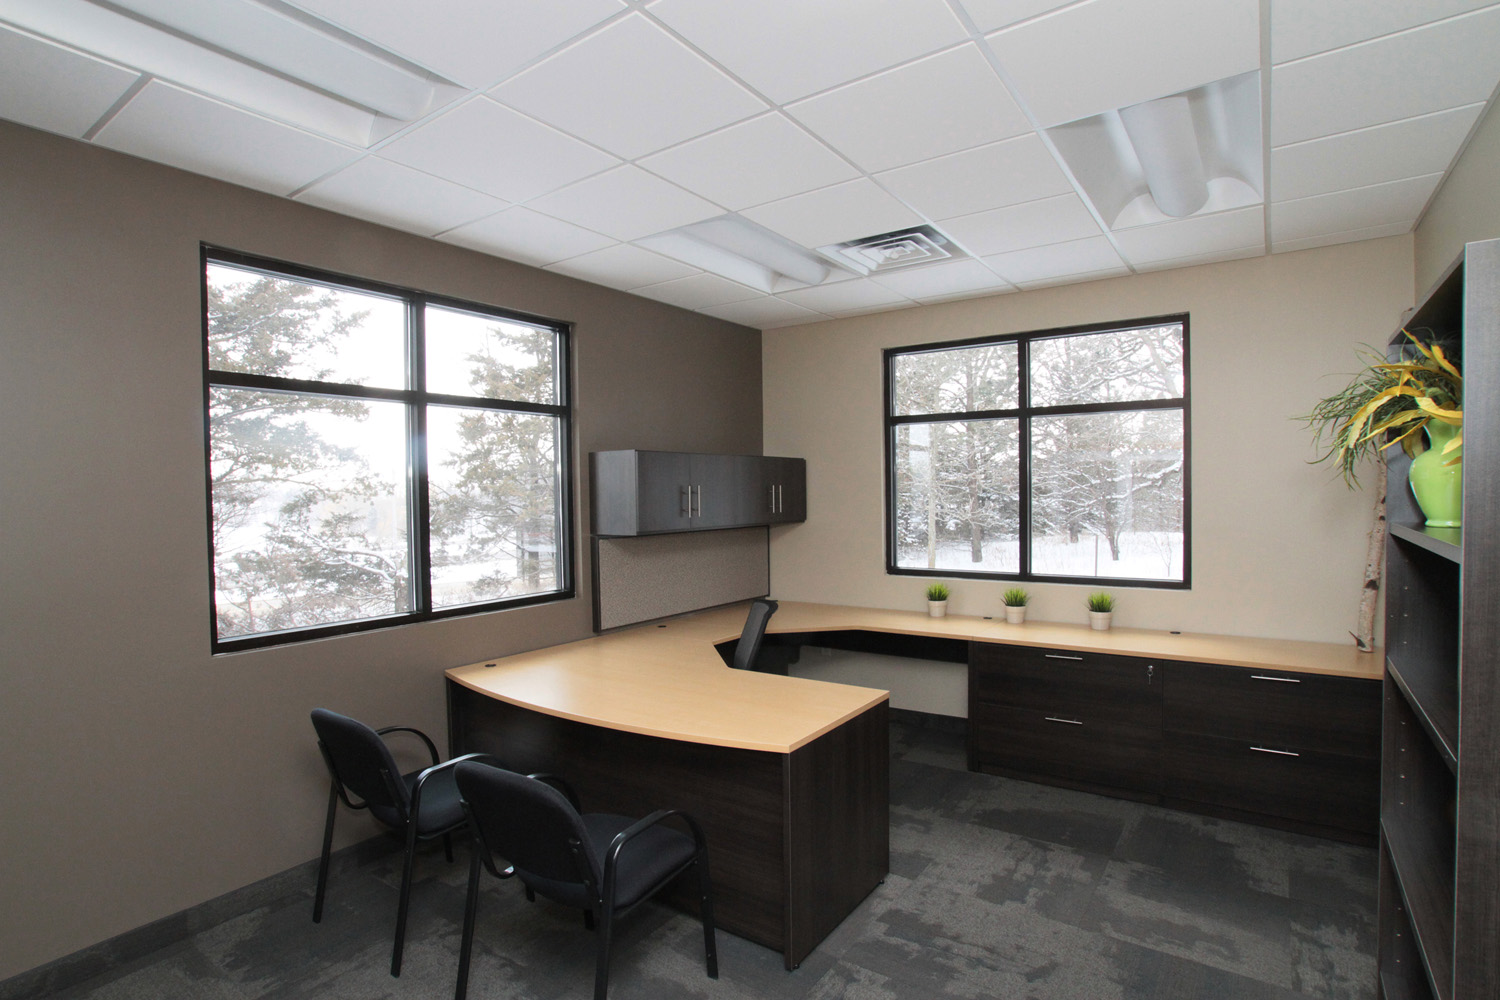 Office space design mankato new used office for Room layout designer free